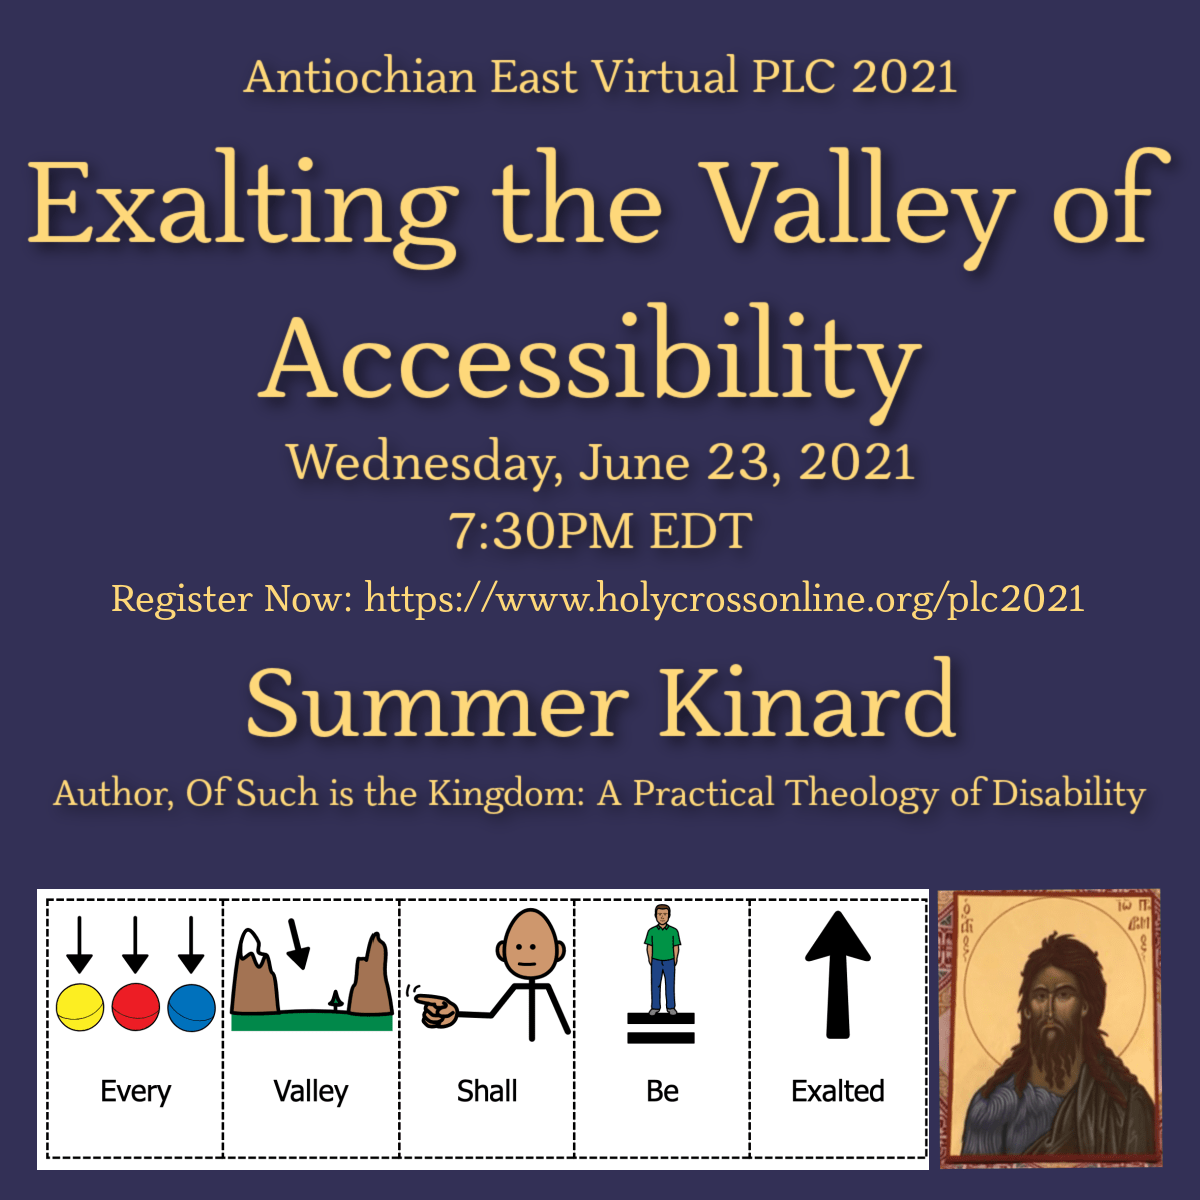 Exalting the Valley of Accessibility. Summer Kinard. Antiochian East PLC June 23, 2021. PCS symbols for Every valley shall be exalted. Icon of John the Forerunner.